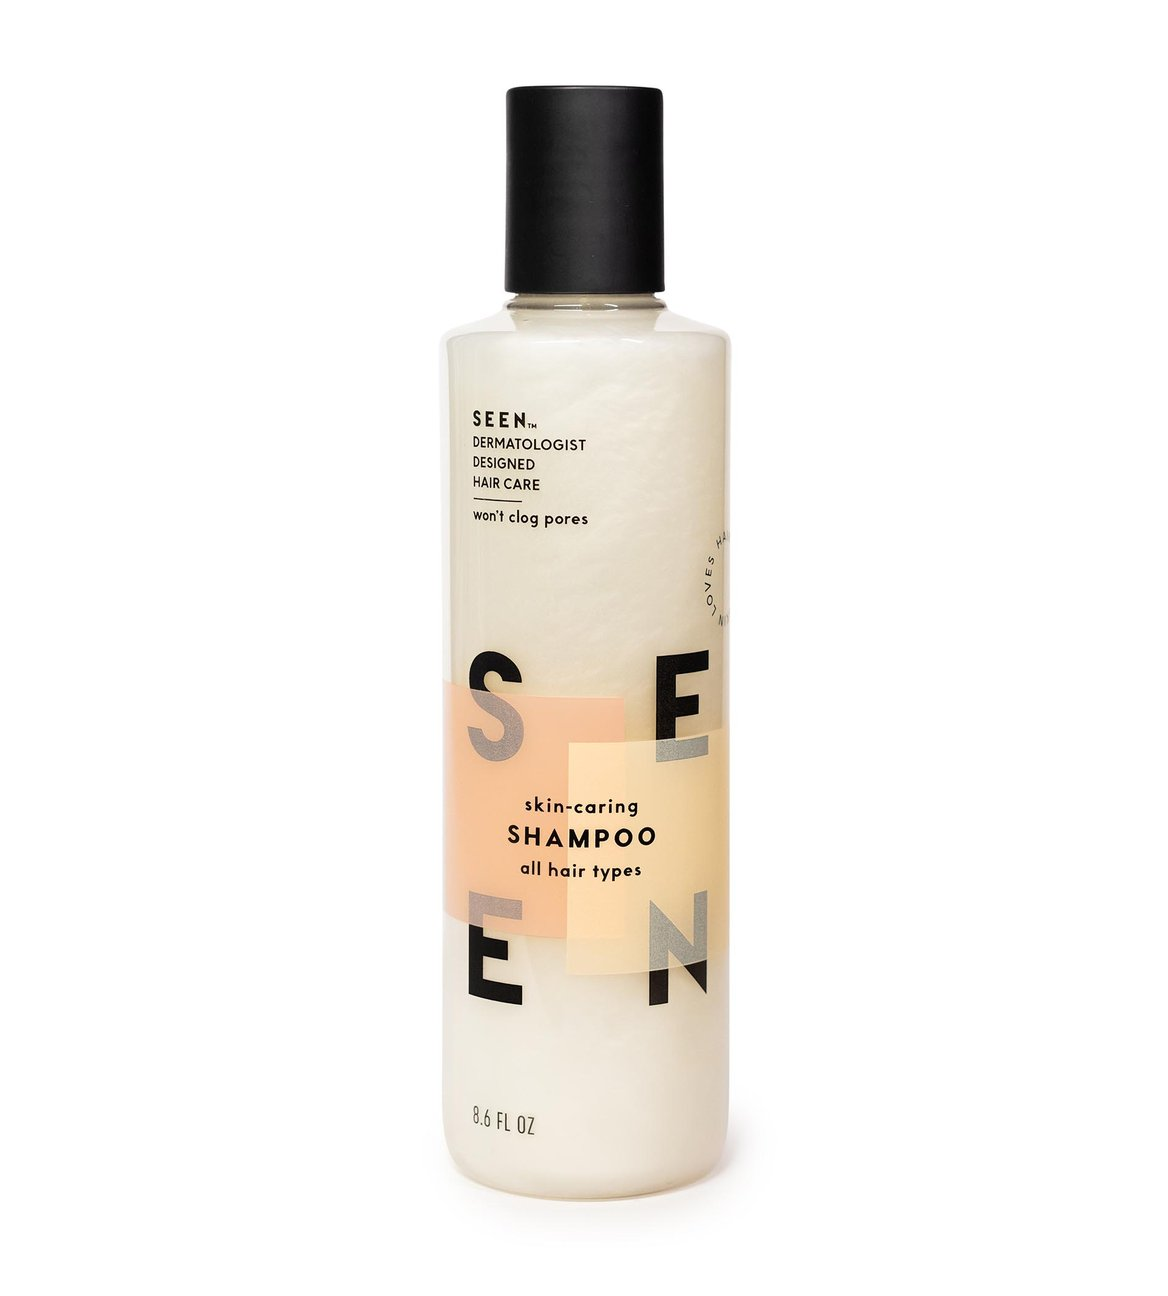 02-Seen-Products_0004_shampoo_front_1168x1296.jpg